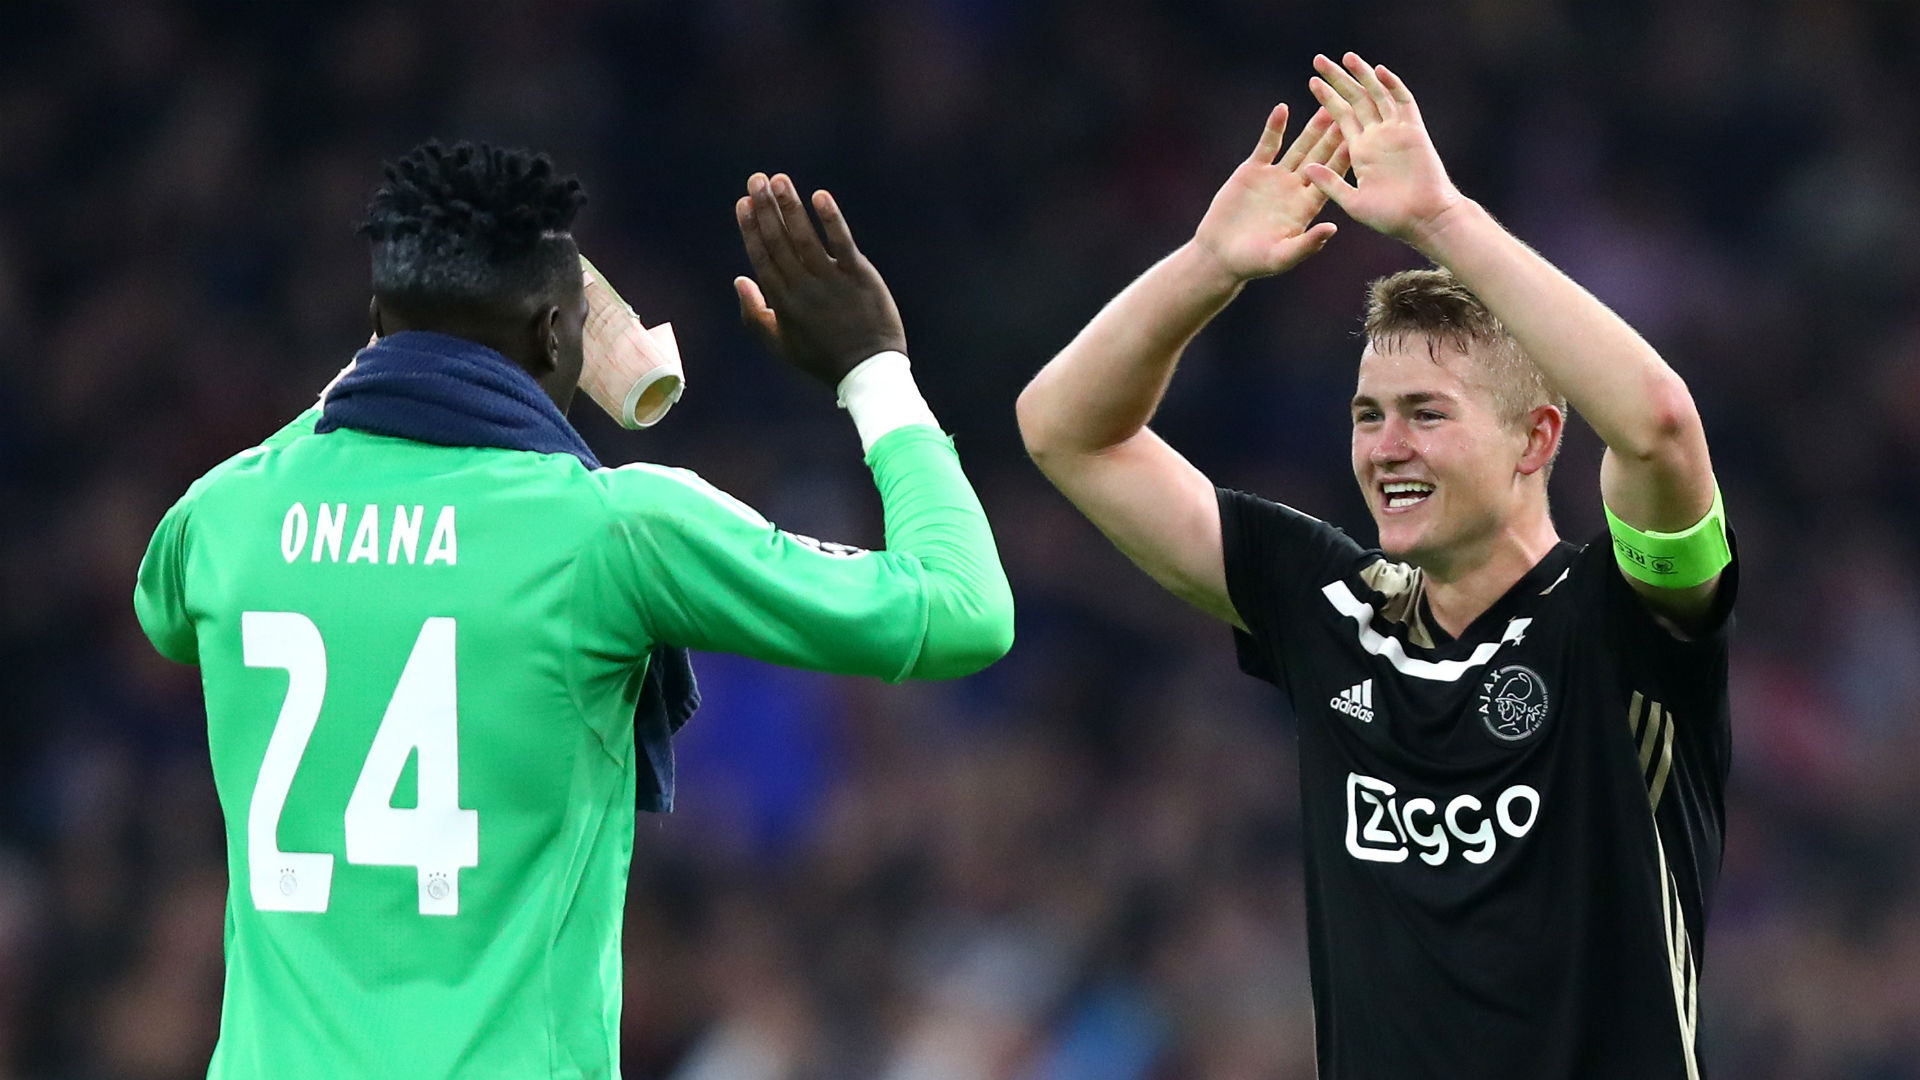 Ajax v Real Madrid: Five stars who could follow De Jong into the big time